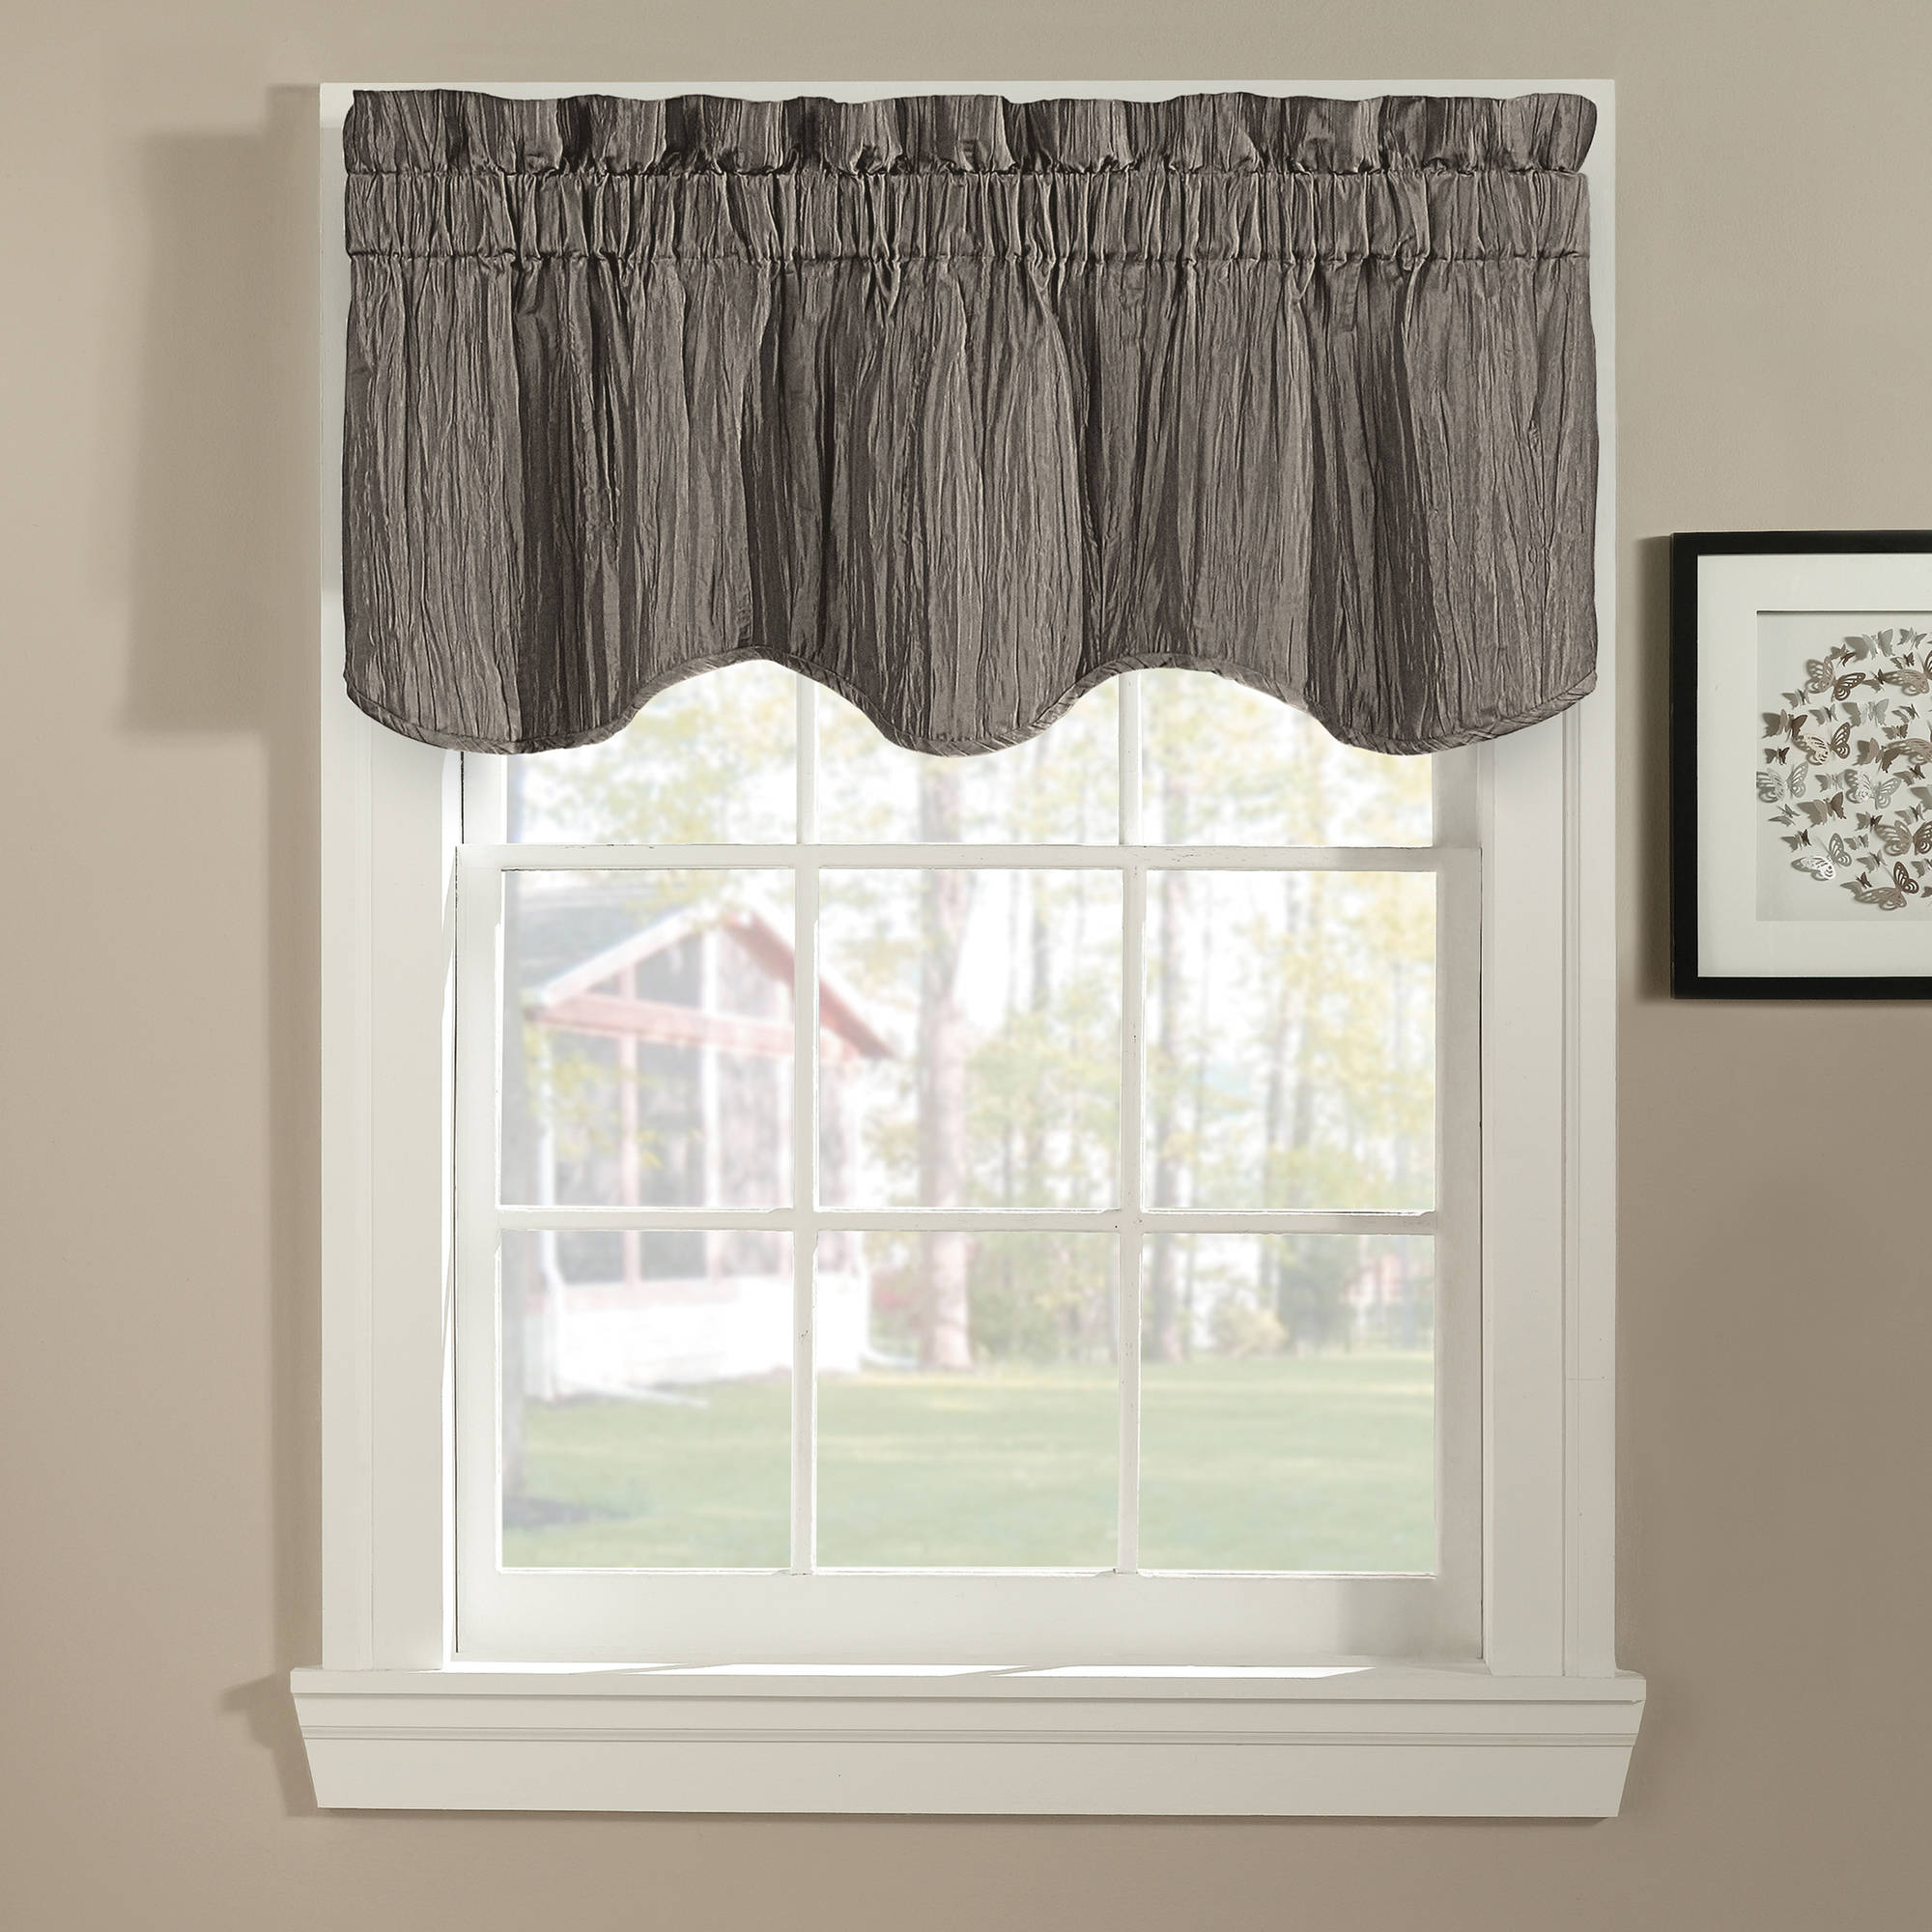 and vcny blinds valances shade sheer scarf pin infinity nursery ideas treatment window black curtain valance